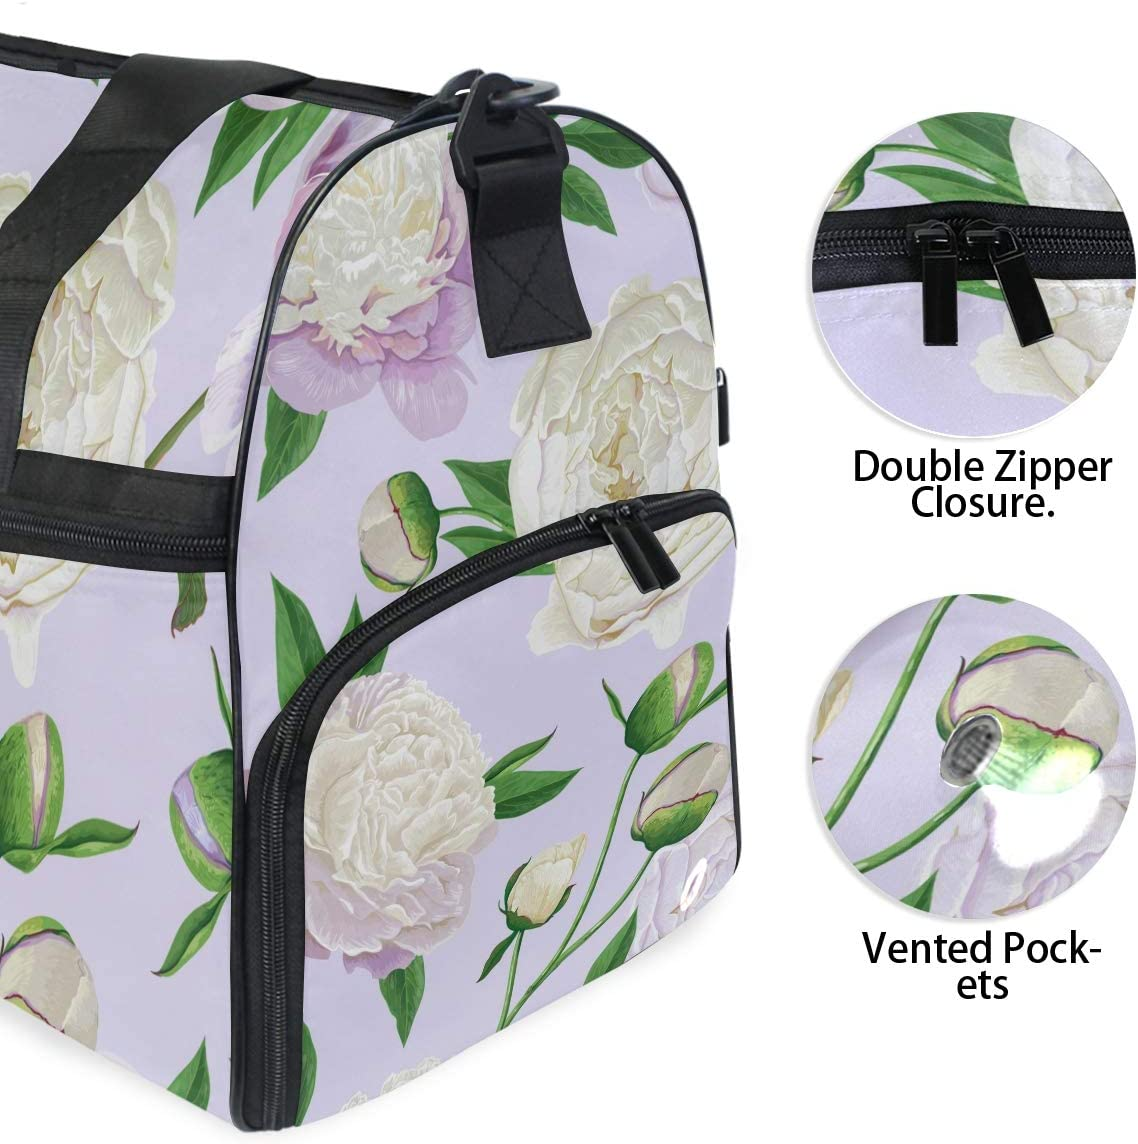 Travel Duffels Spring Blooming Flowers Duffle Bag Luggage Sports Gym for Women /& Men